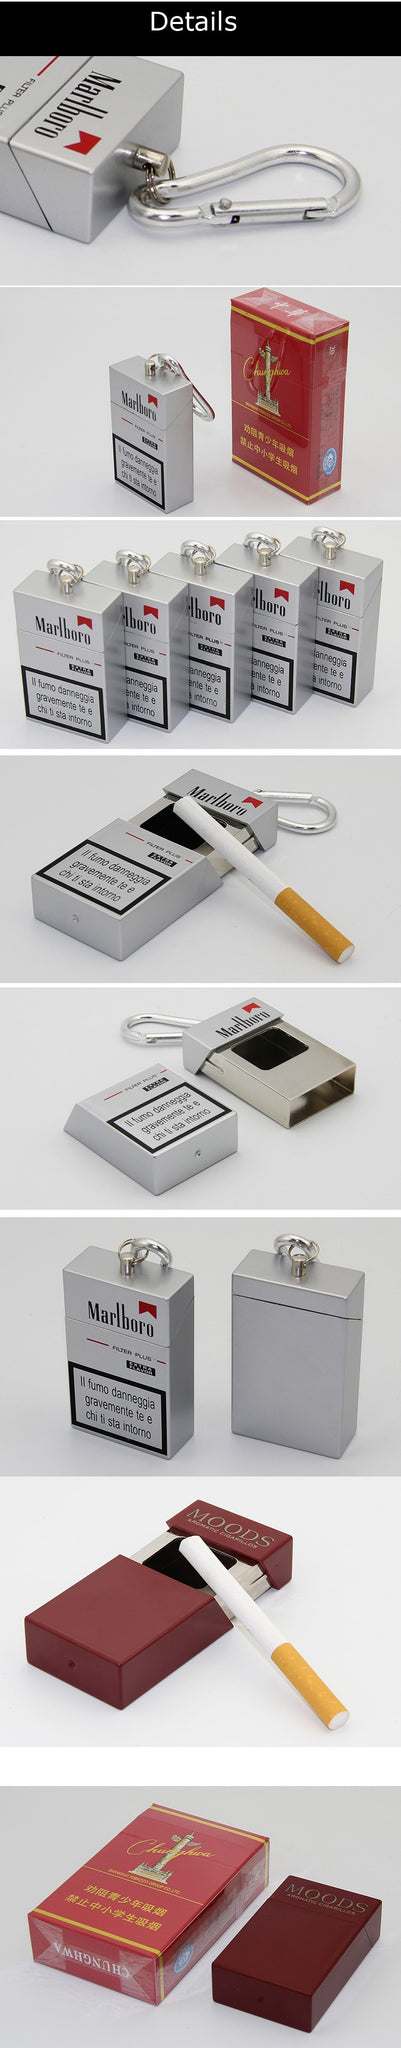 Pocket Ashtray With Lid Keychain